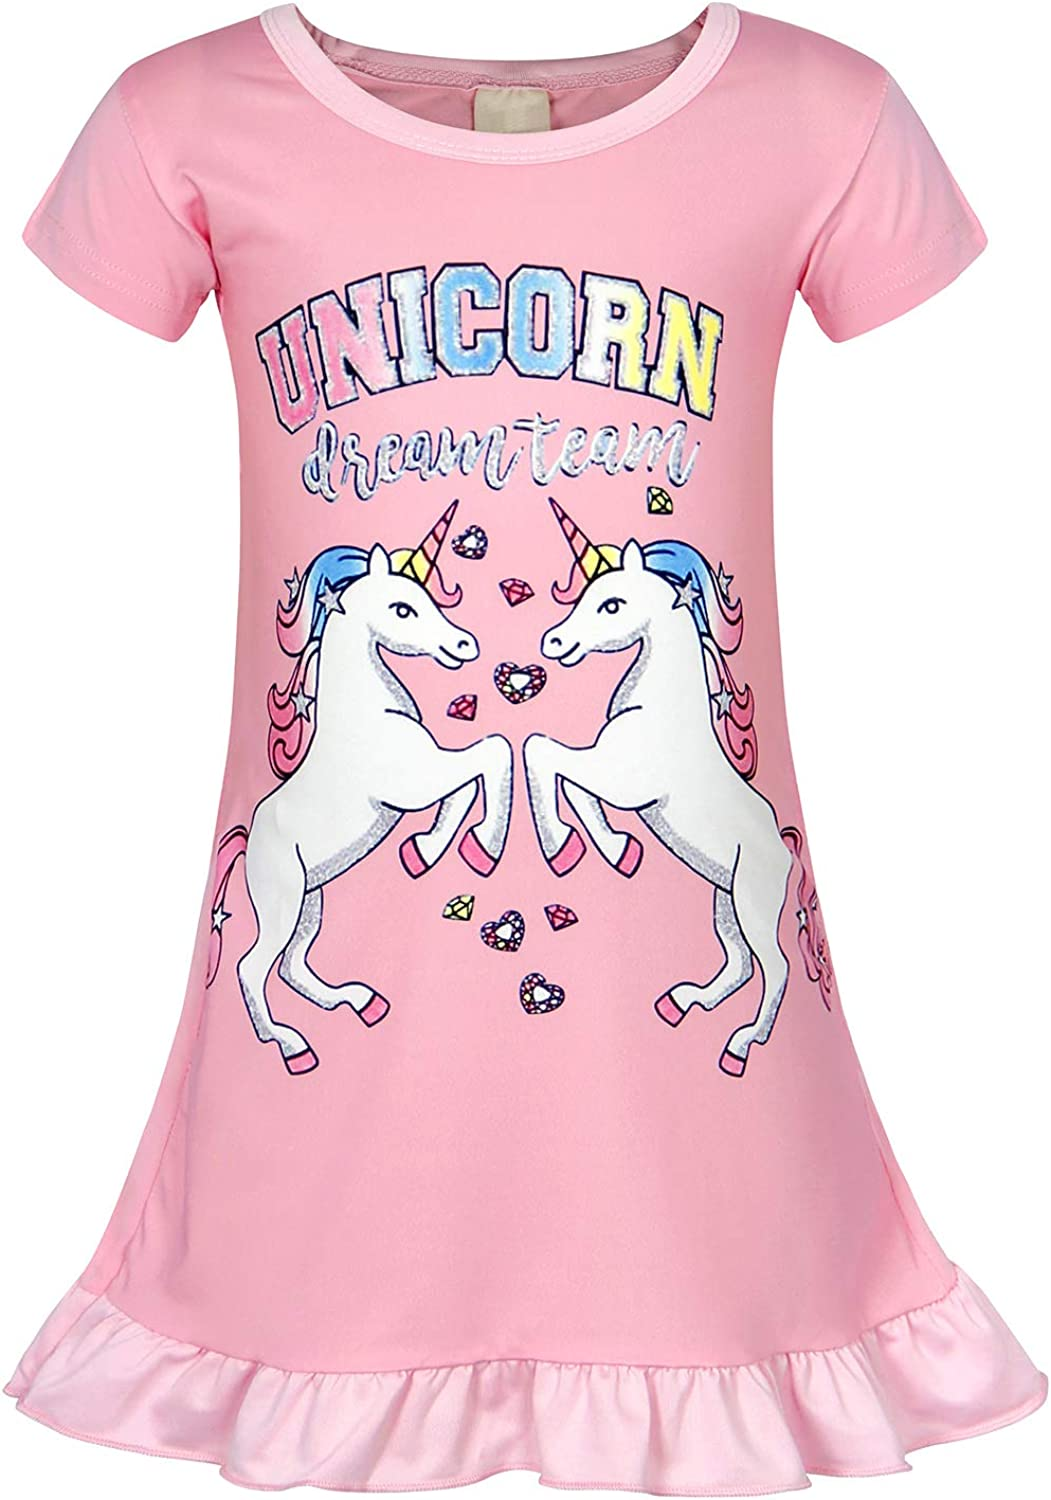 AmzBarley Girls Unicorn Nightgowns Kids Rainbow Nightie Nightdress Short//Long Sleeve Unicorns Nighties Dressing Gown Night Dresses Child Sleeping Outfit